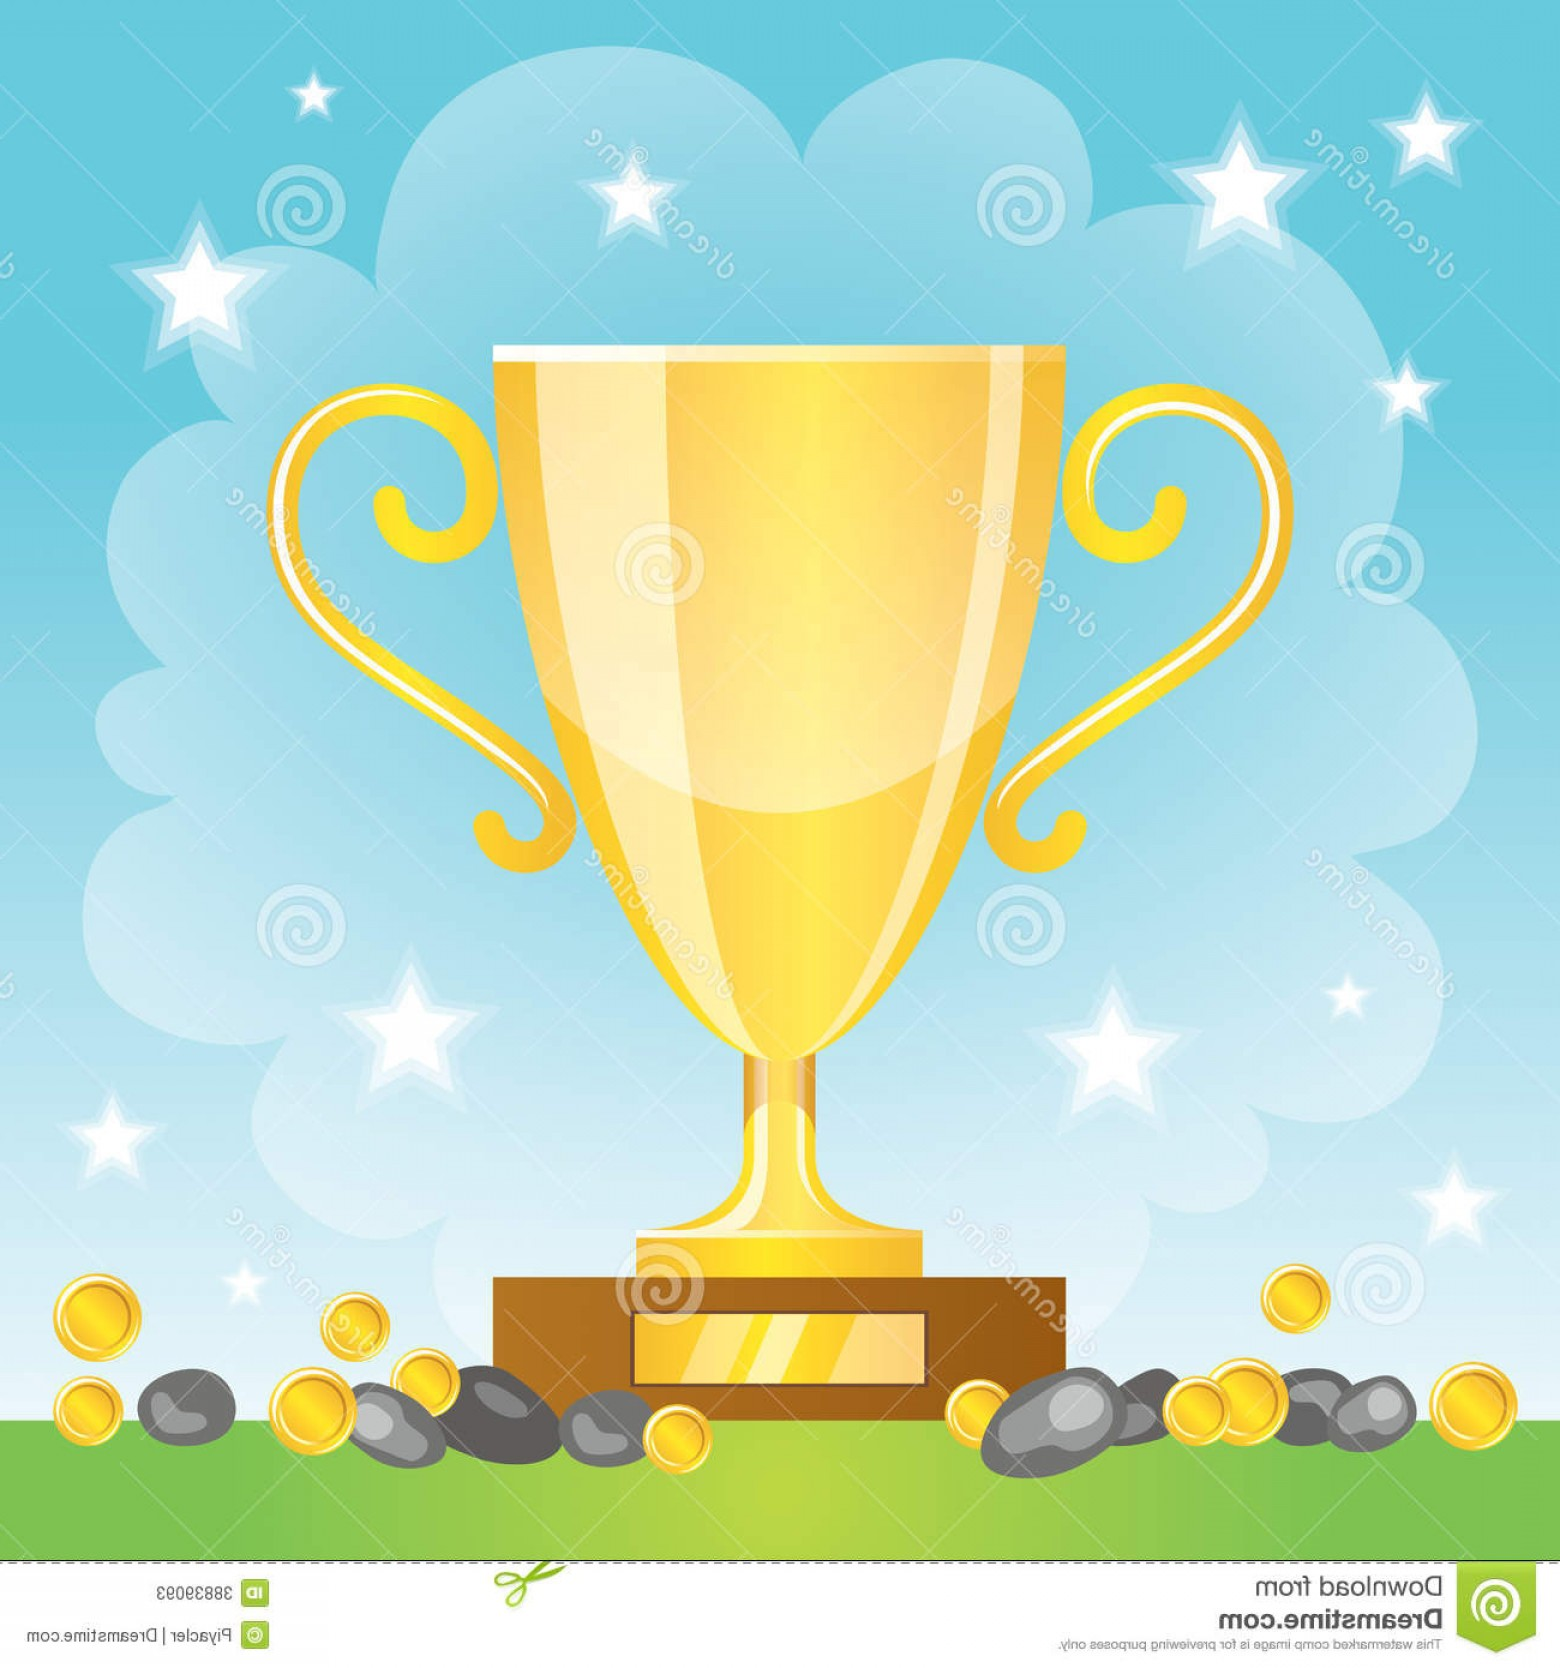 Gold Trophy Vector: Stock Photos Winner Cup Coins Gold Trophy Vector Illustration Image